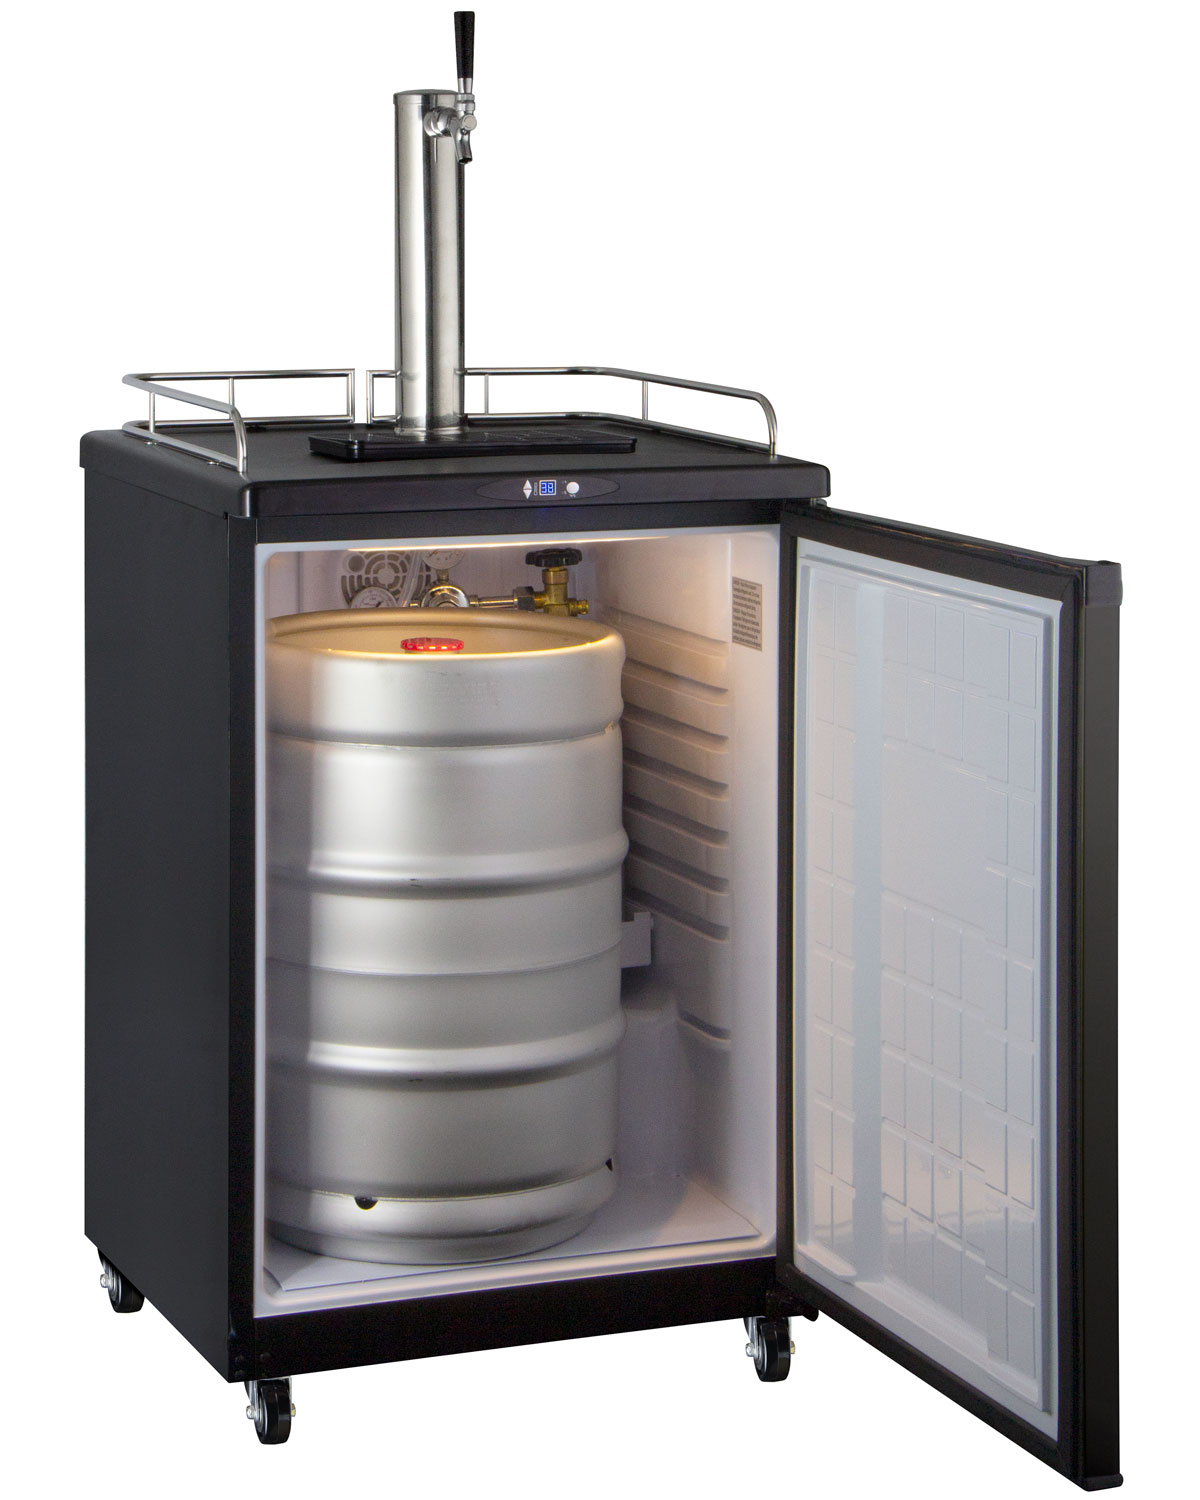 Countertop Beer Cooler And Tap Kegco Z163b 1nk Single Tap Digital Draft Beer Kegerator